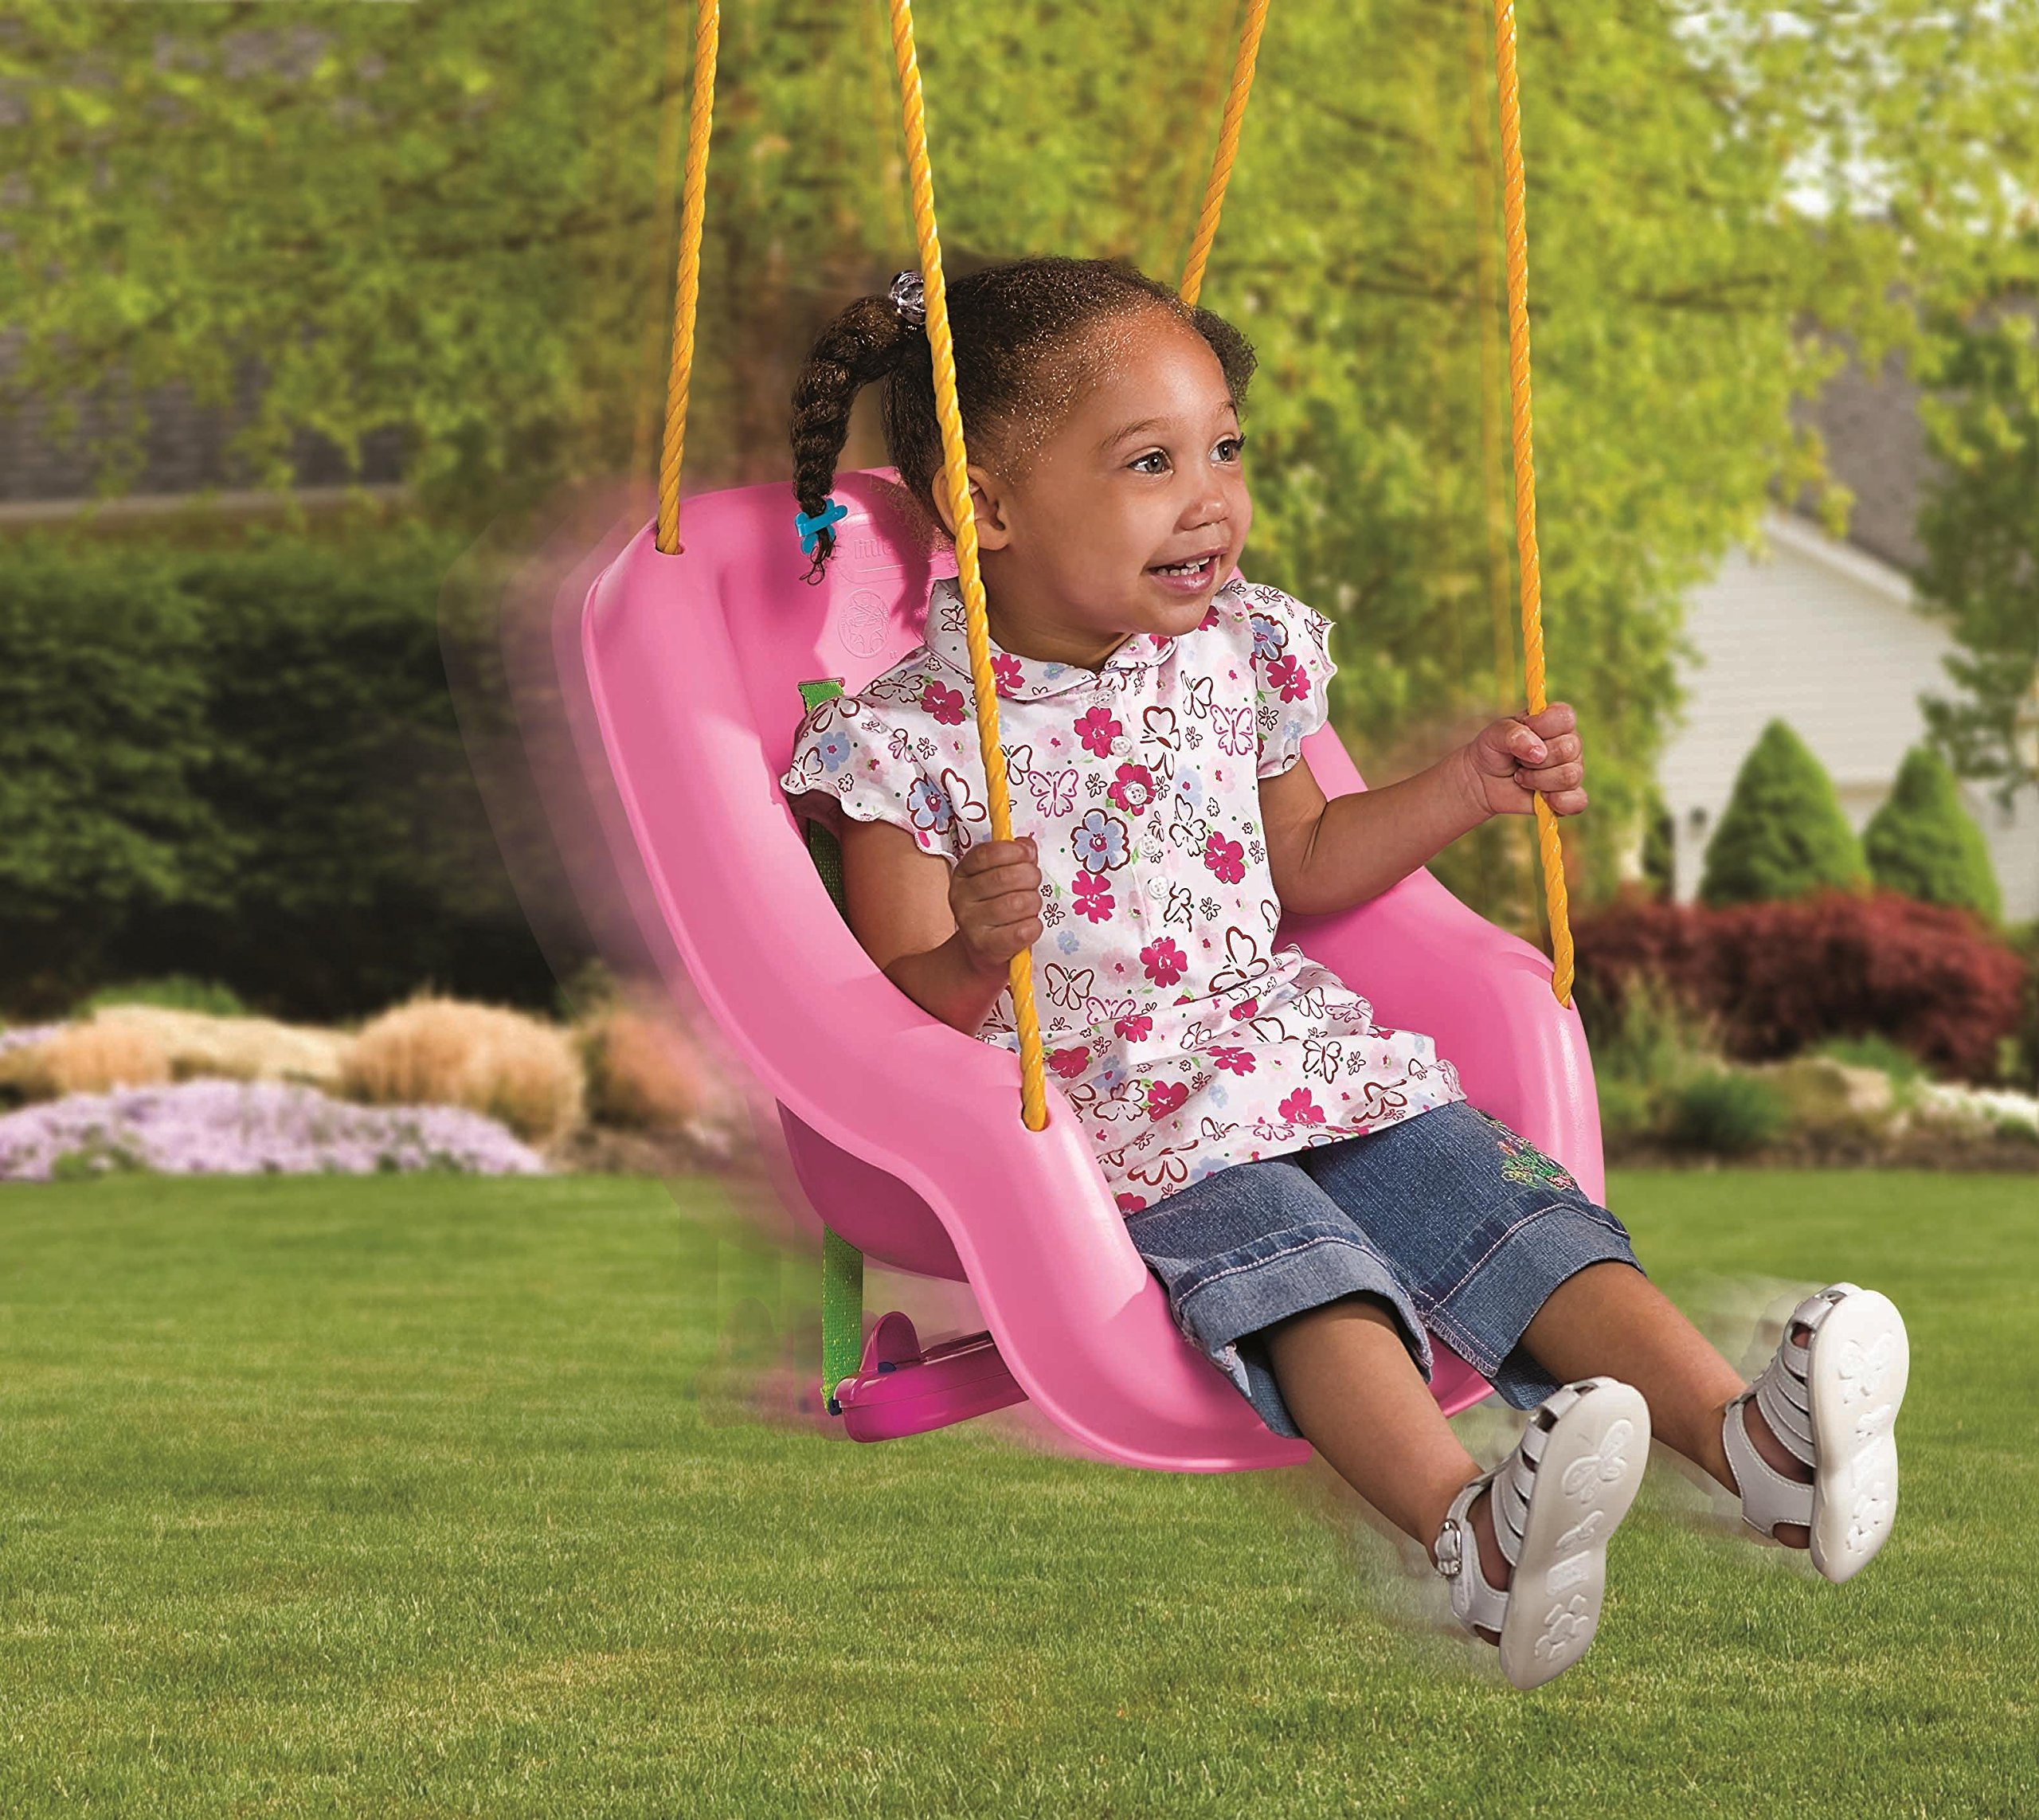 Little Tikes 2-in-1 Snug 'n Secure Swing, Pink by Little Tikes